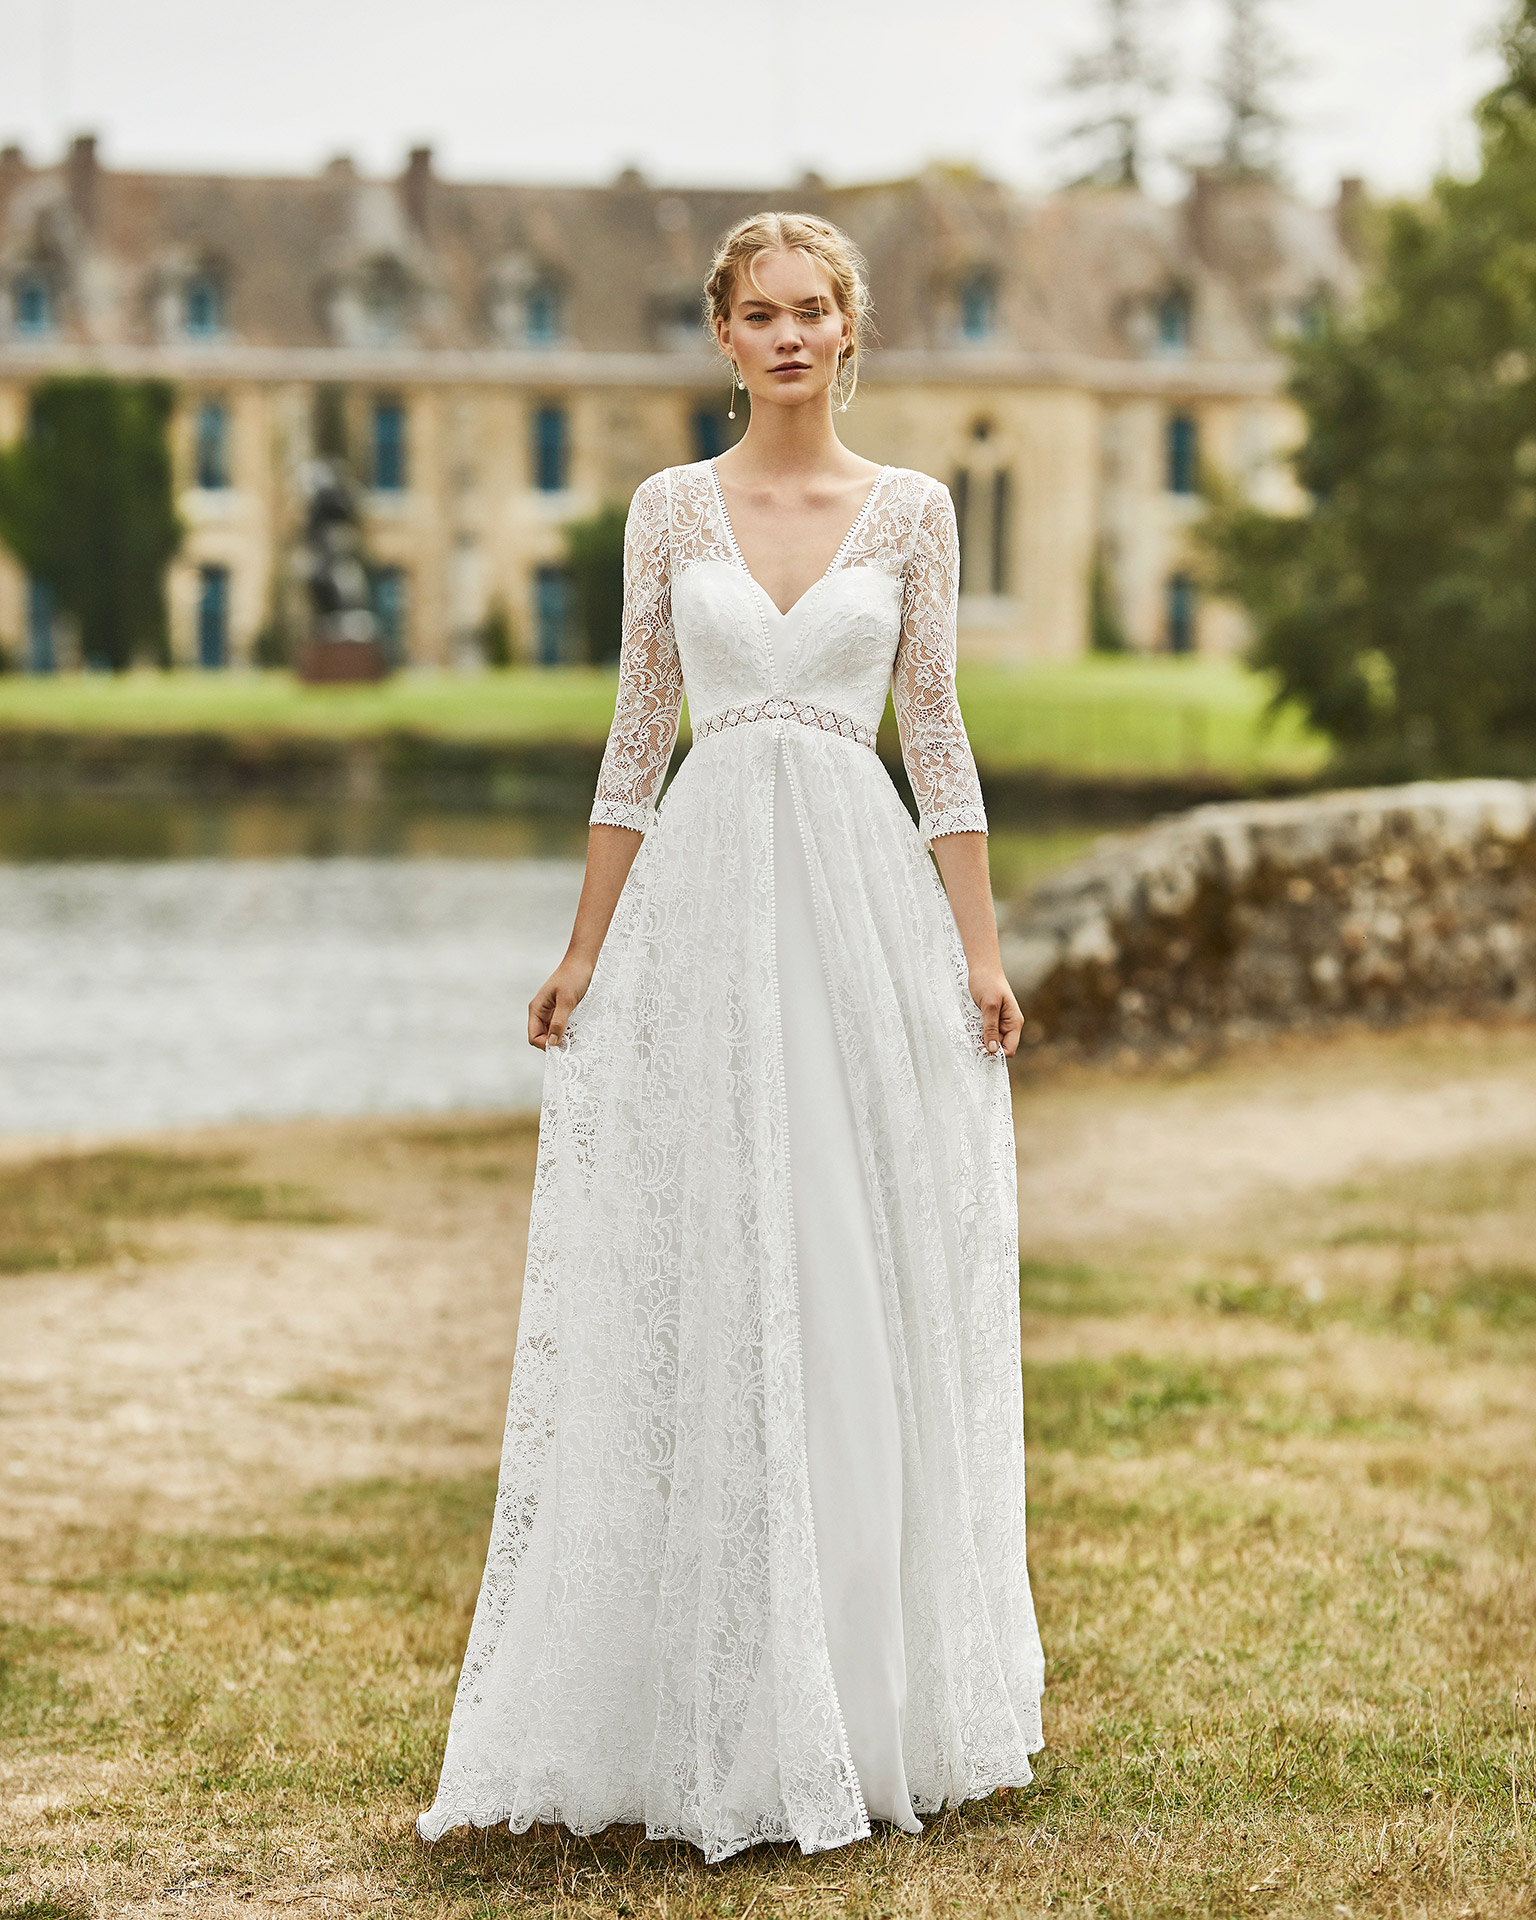 Lace wedding dress. V-neckline in lace with sweetheart underlay, three-quarter sleeves in lace and lace back with buttons. 2021 ALMANOVIA Collection.